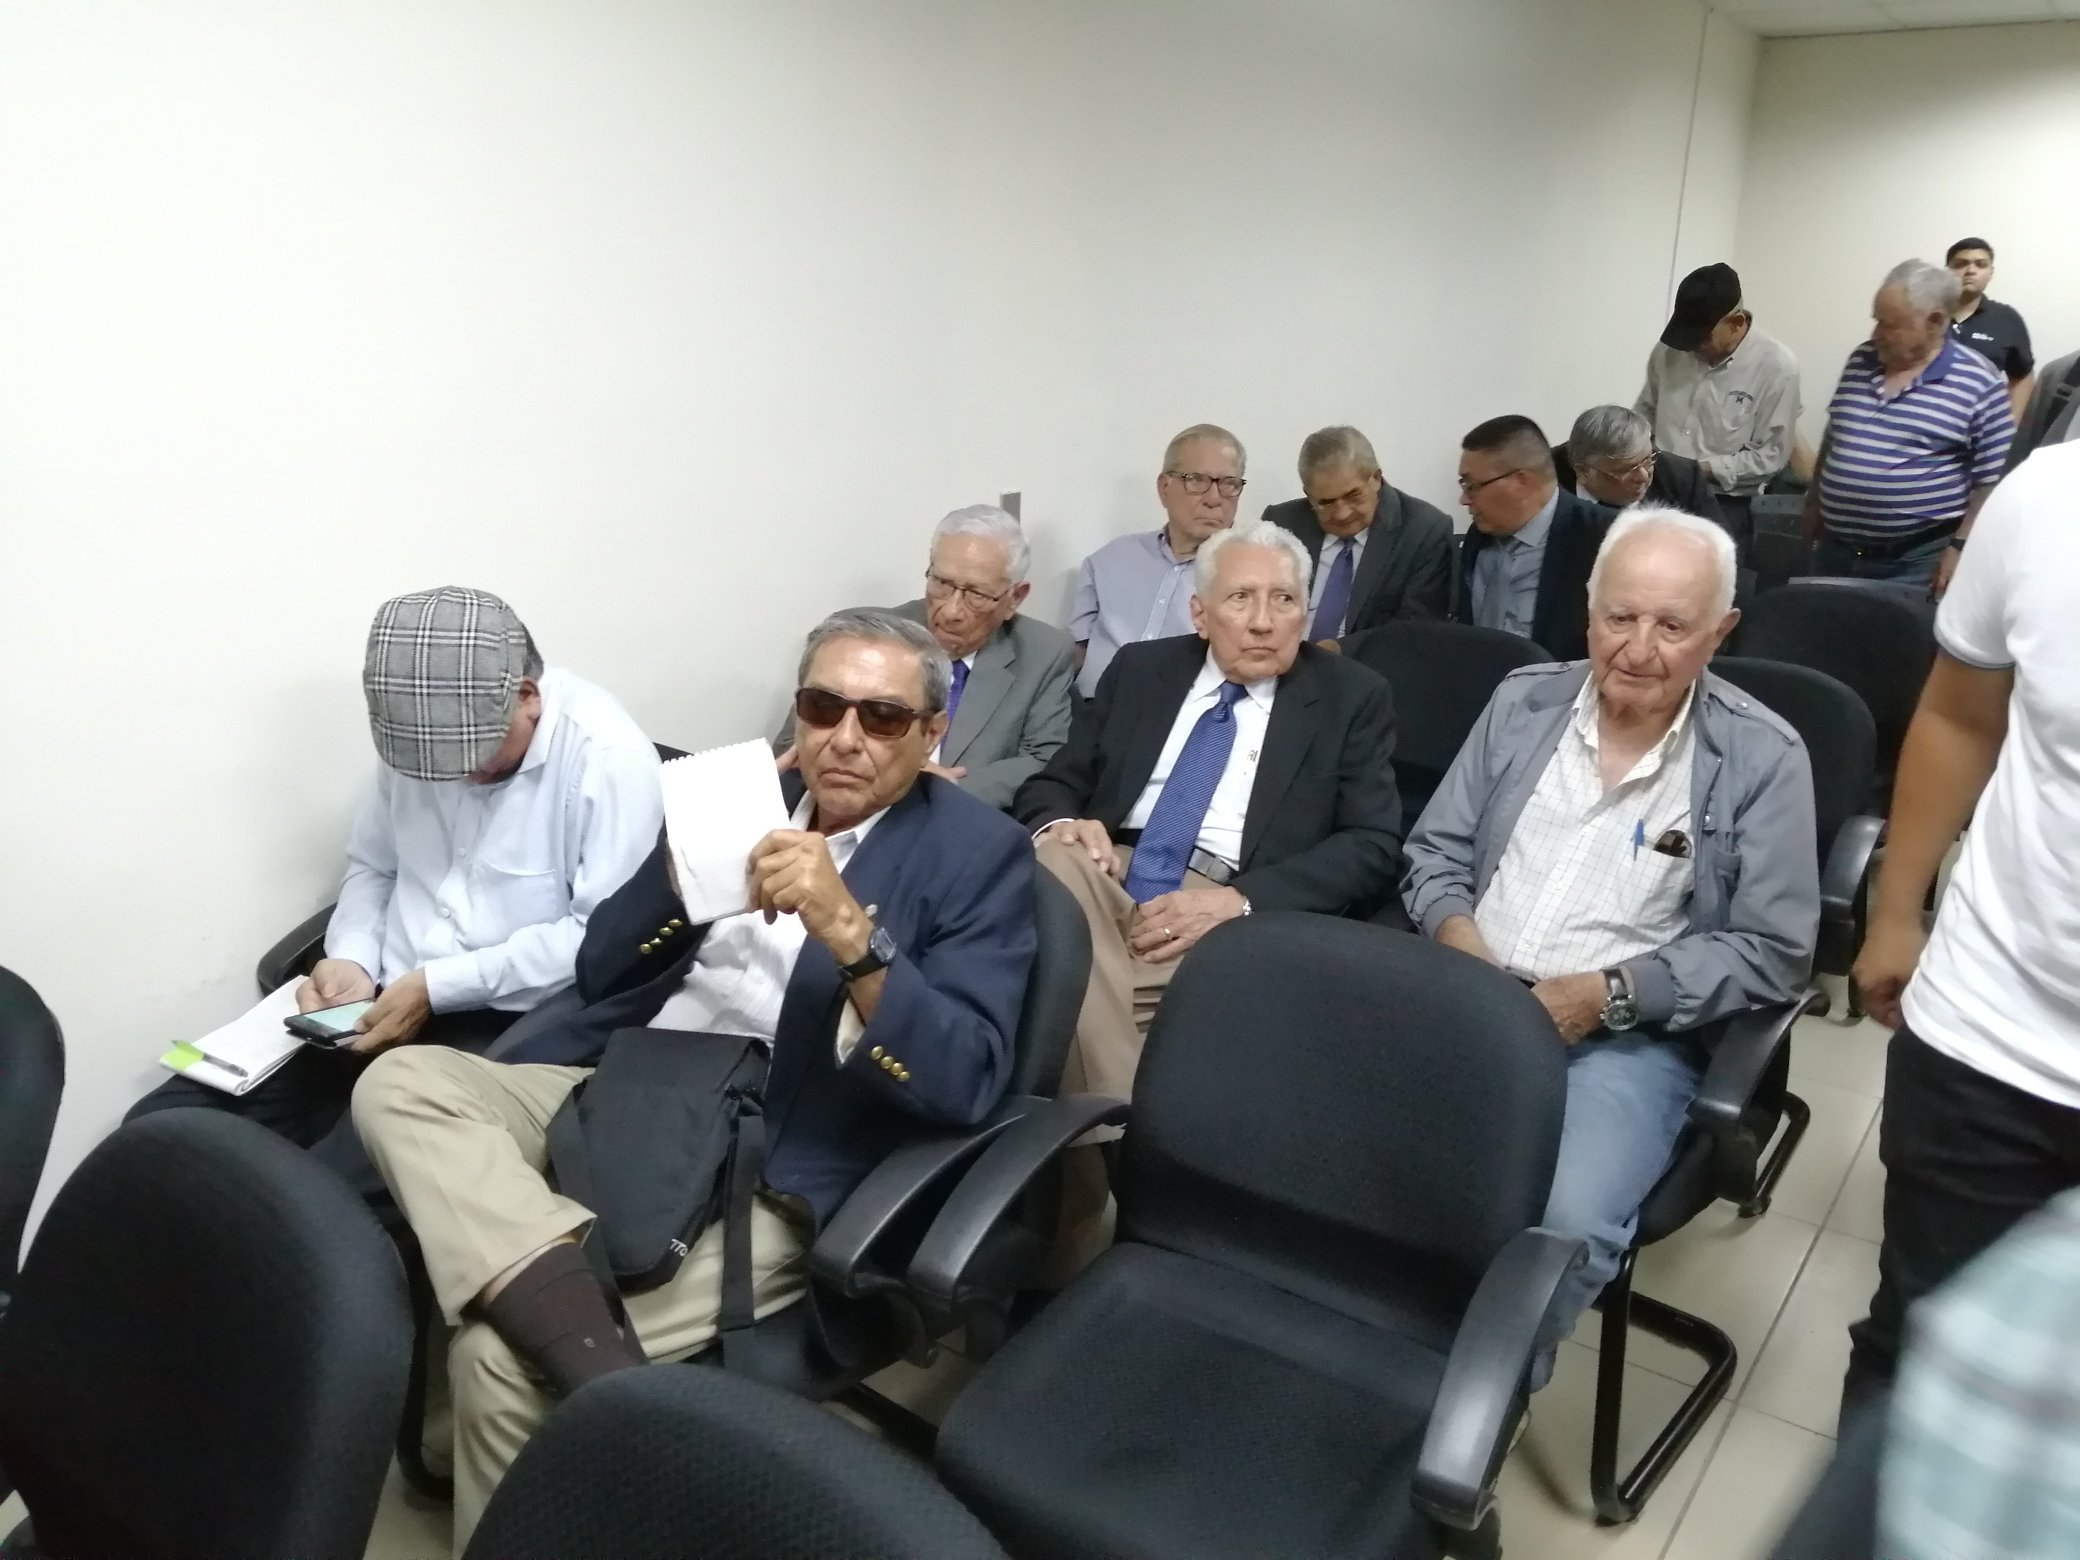 Generals implicated in the El Mozote Massacre listen to the charges against them at a hearing in San Francisco Gotera, Morazan on July 18, 2019.